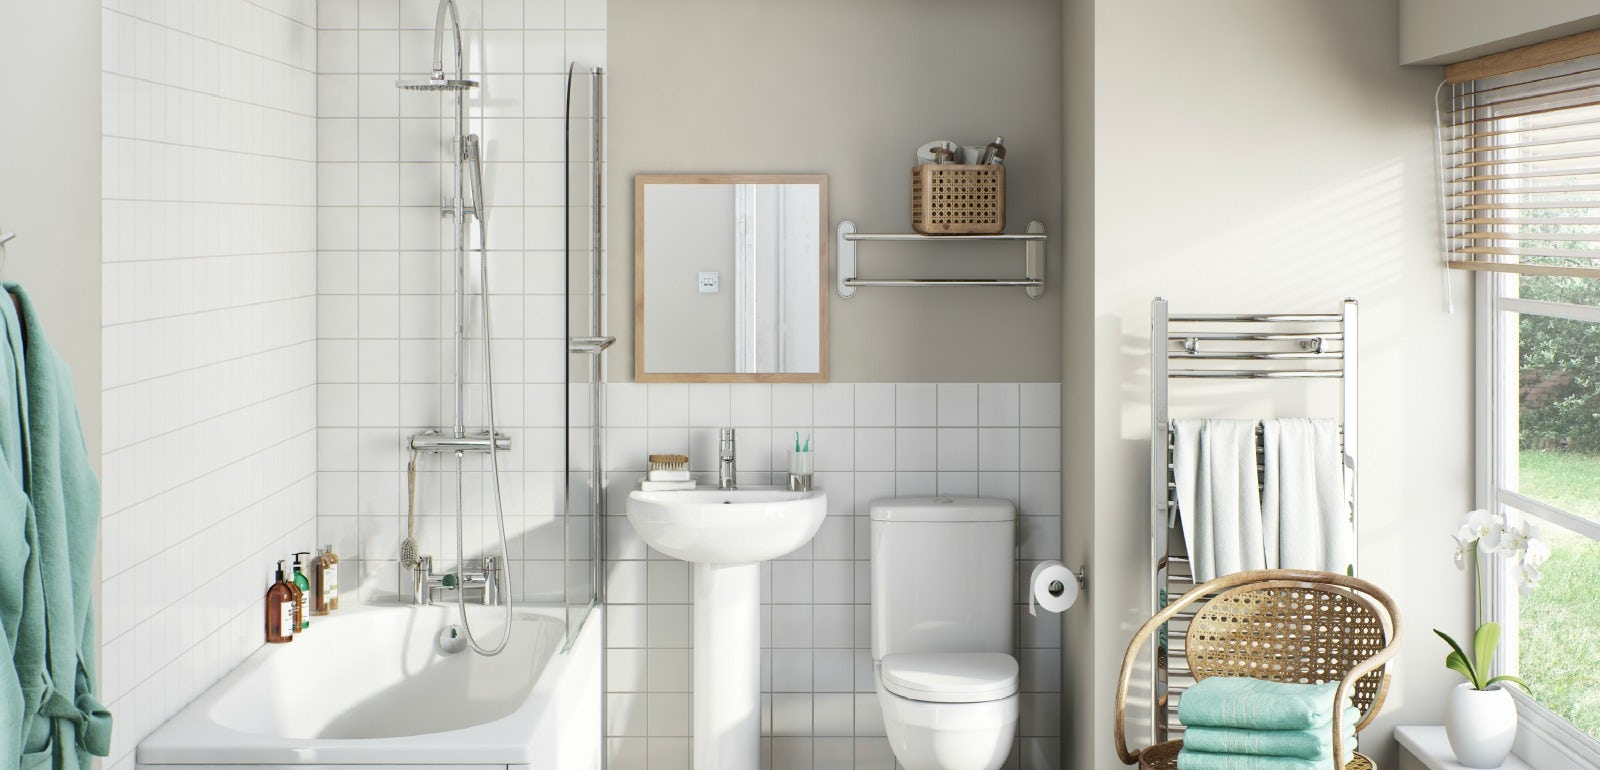 Ensuite Bathroom Minimum Size your bathroom layout | victoriaplum